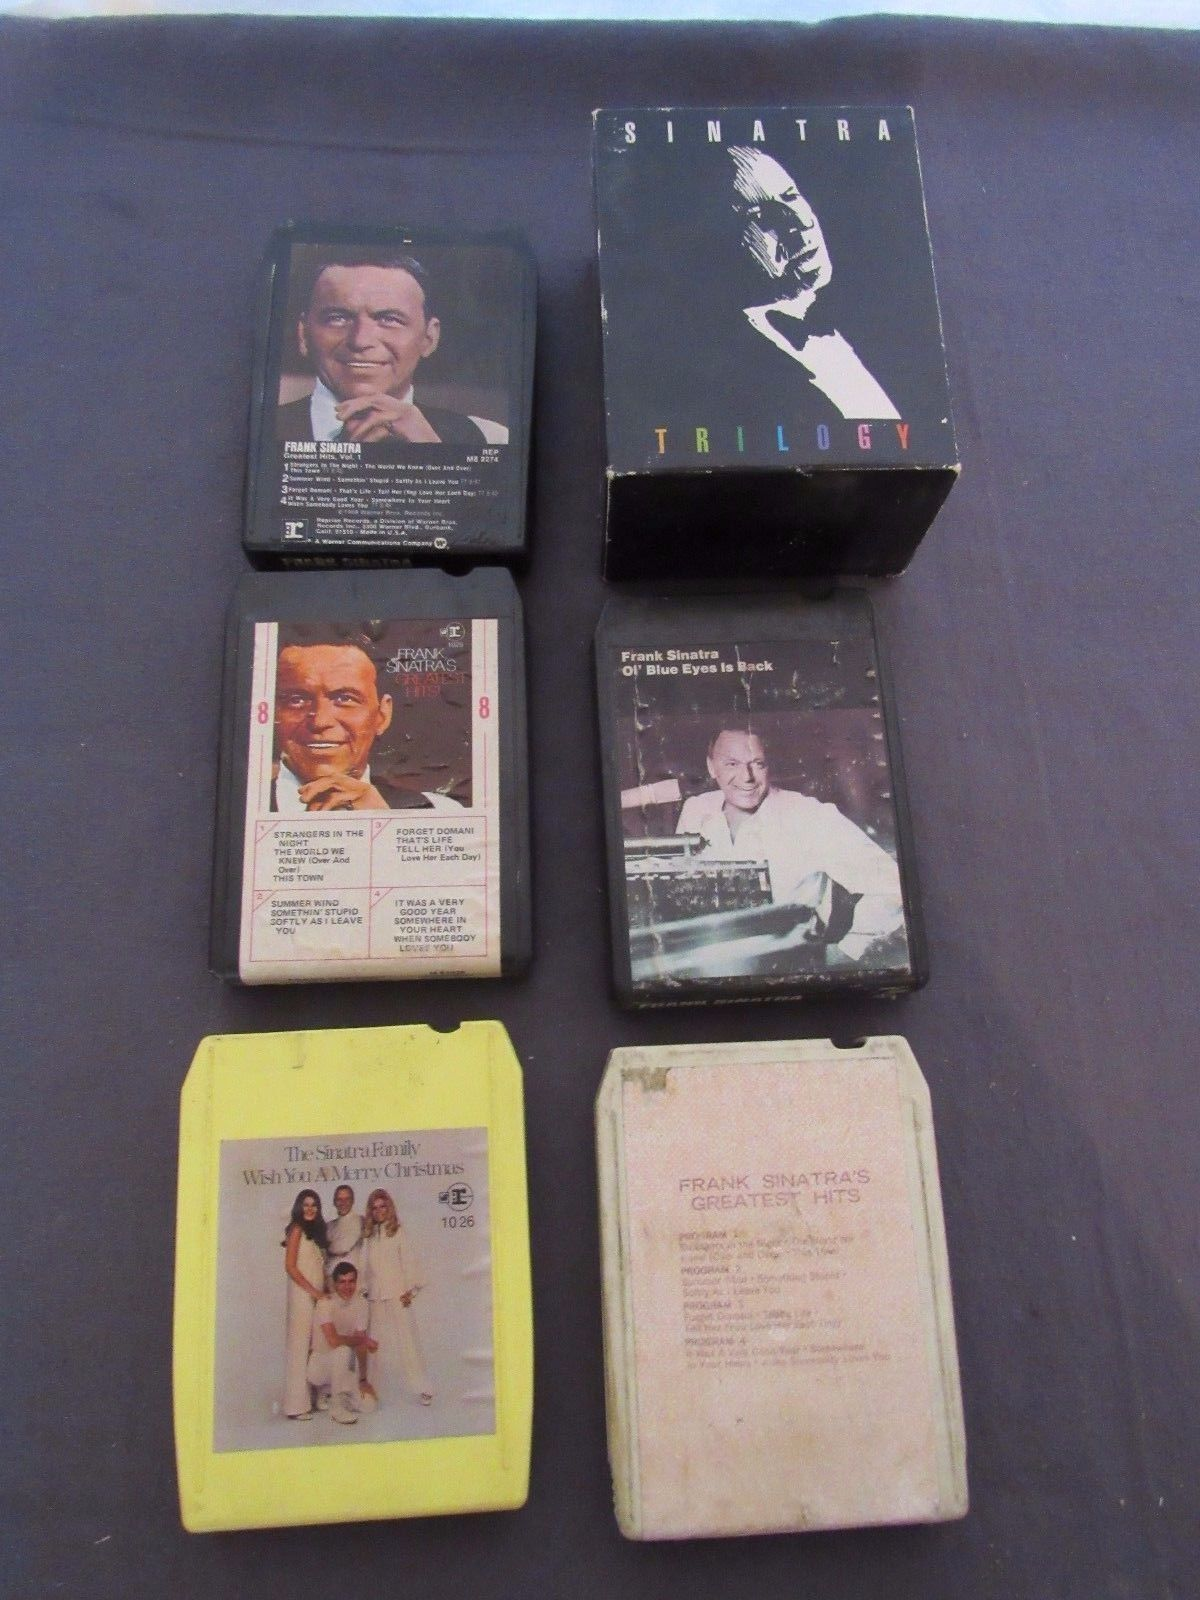 8-Track Lot Frank Sinatra Trilogy Blue Eyes Greatest Hits Family Christmas